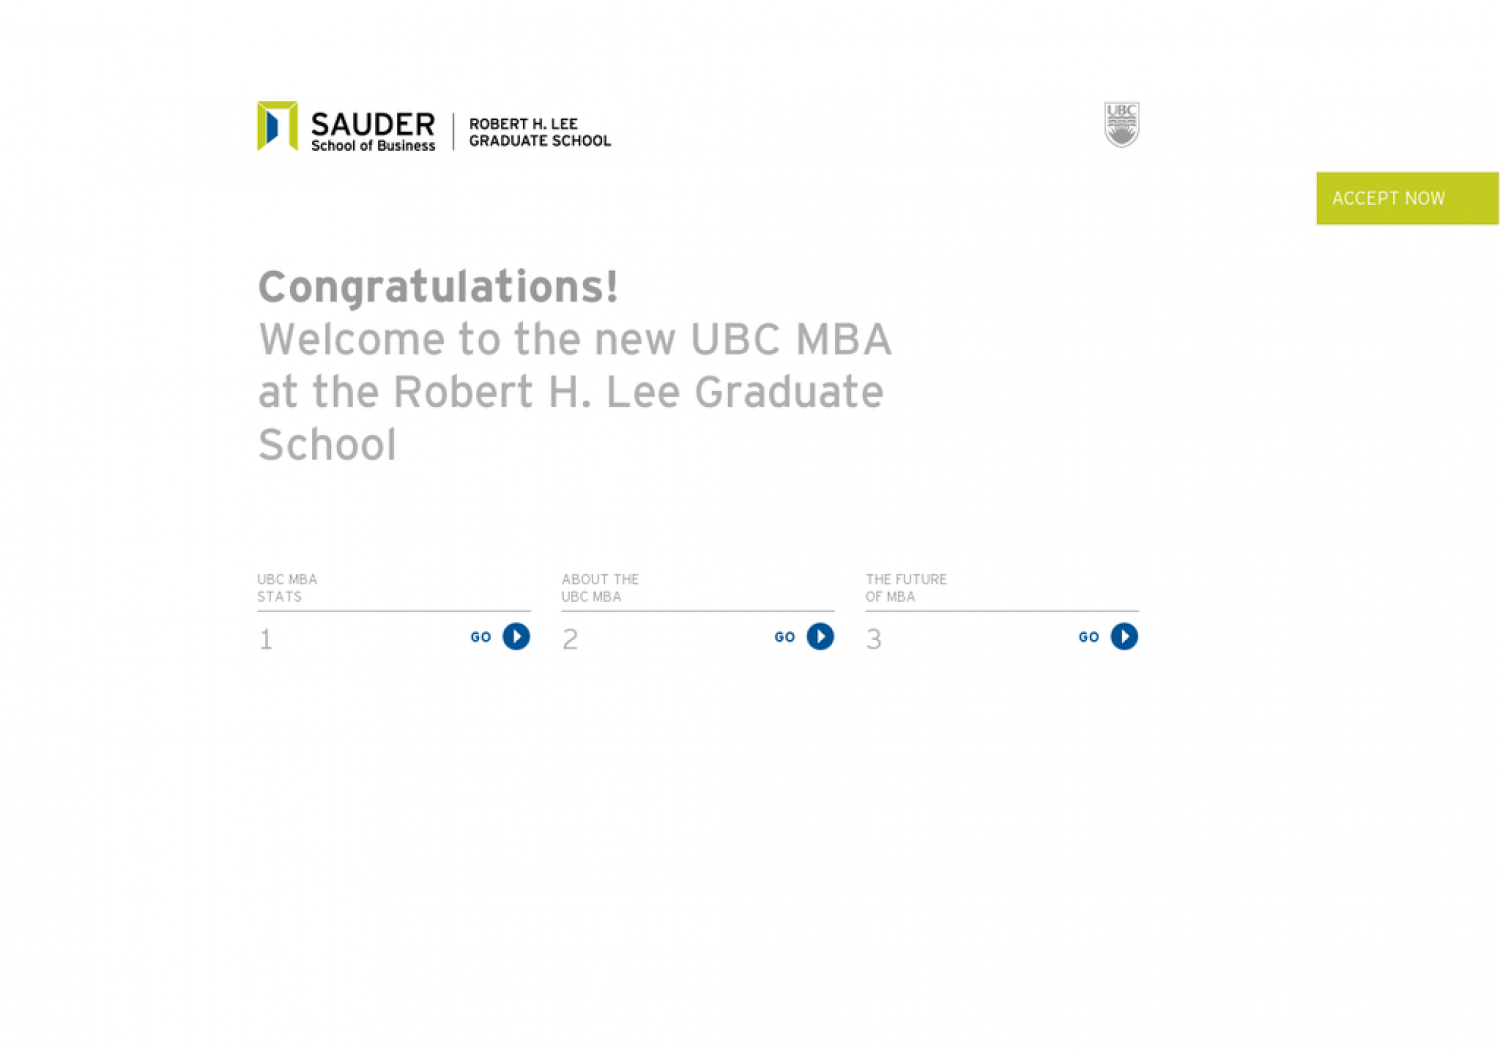 UBC MBA Welcome Infographic